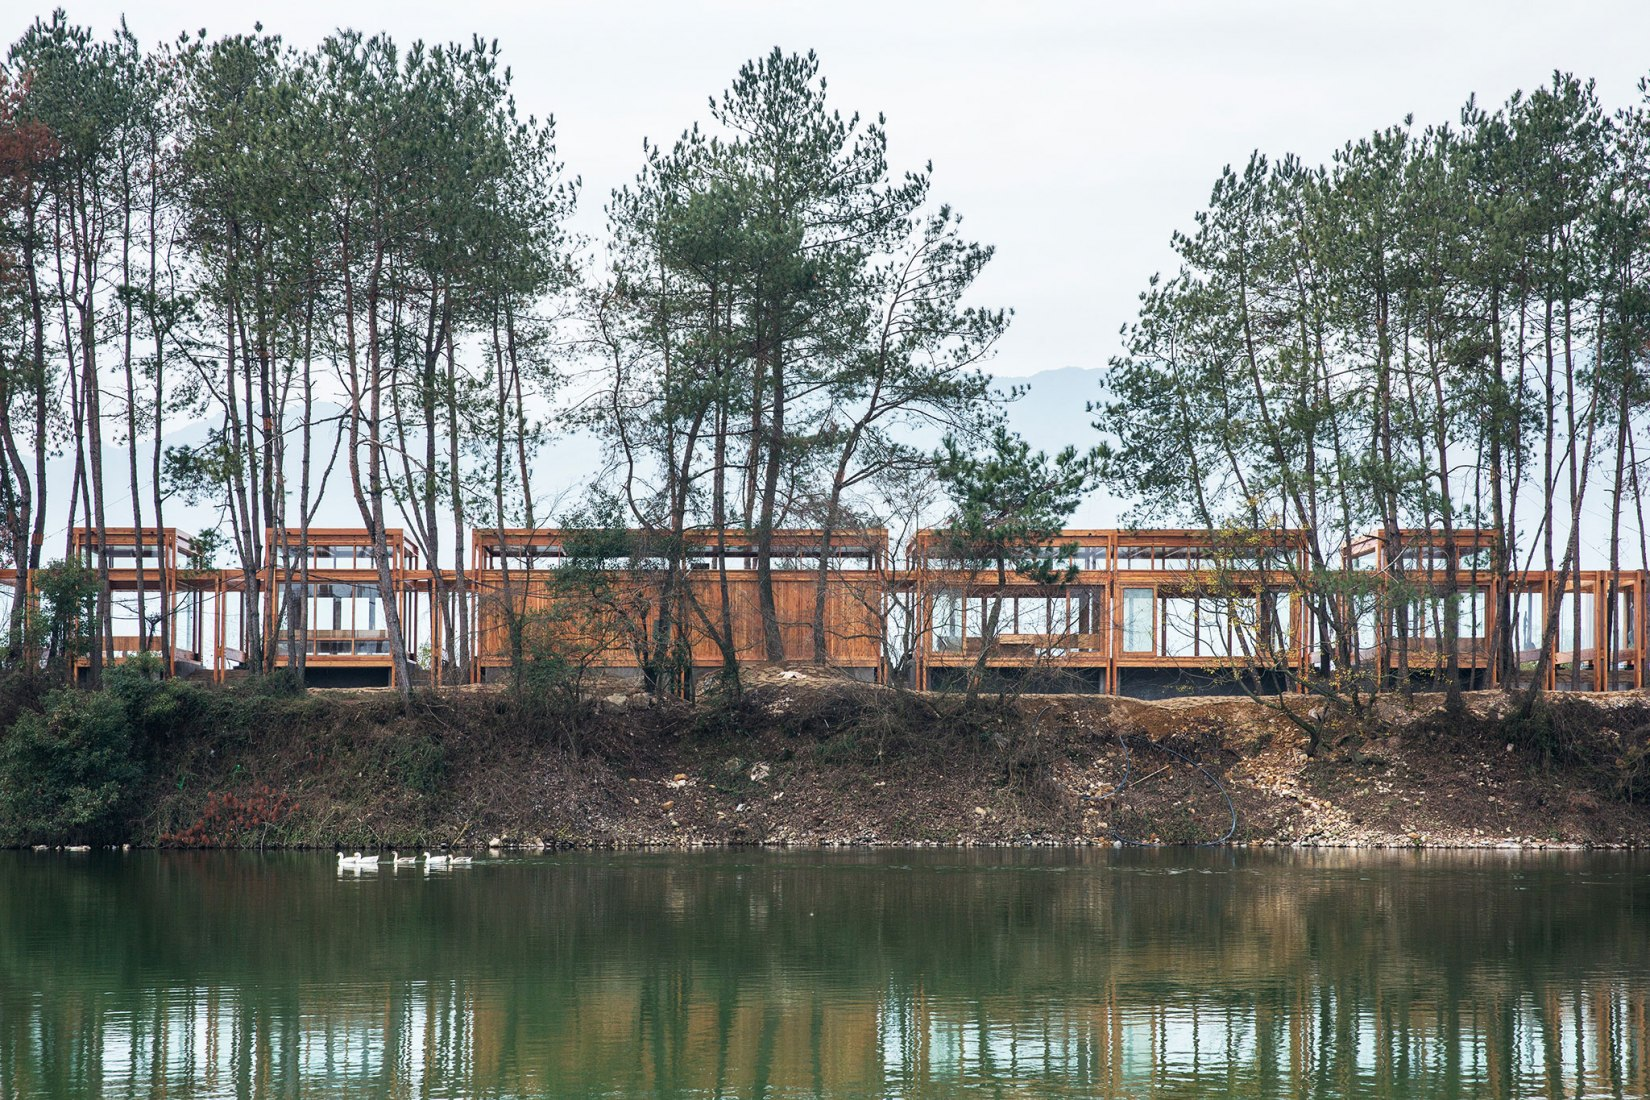 Pine Pavilion by DnA_ Design and Architecture. Photograph by Wang Ziling